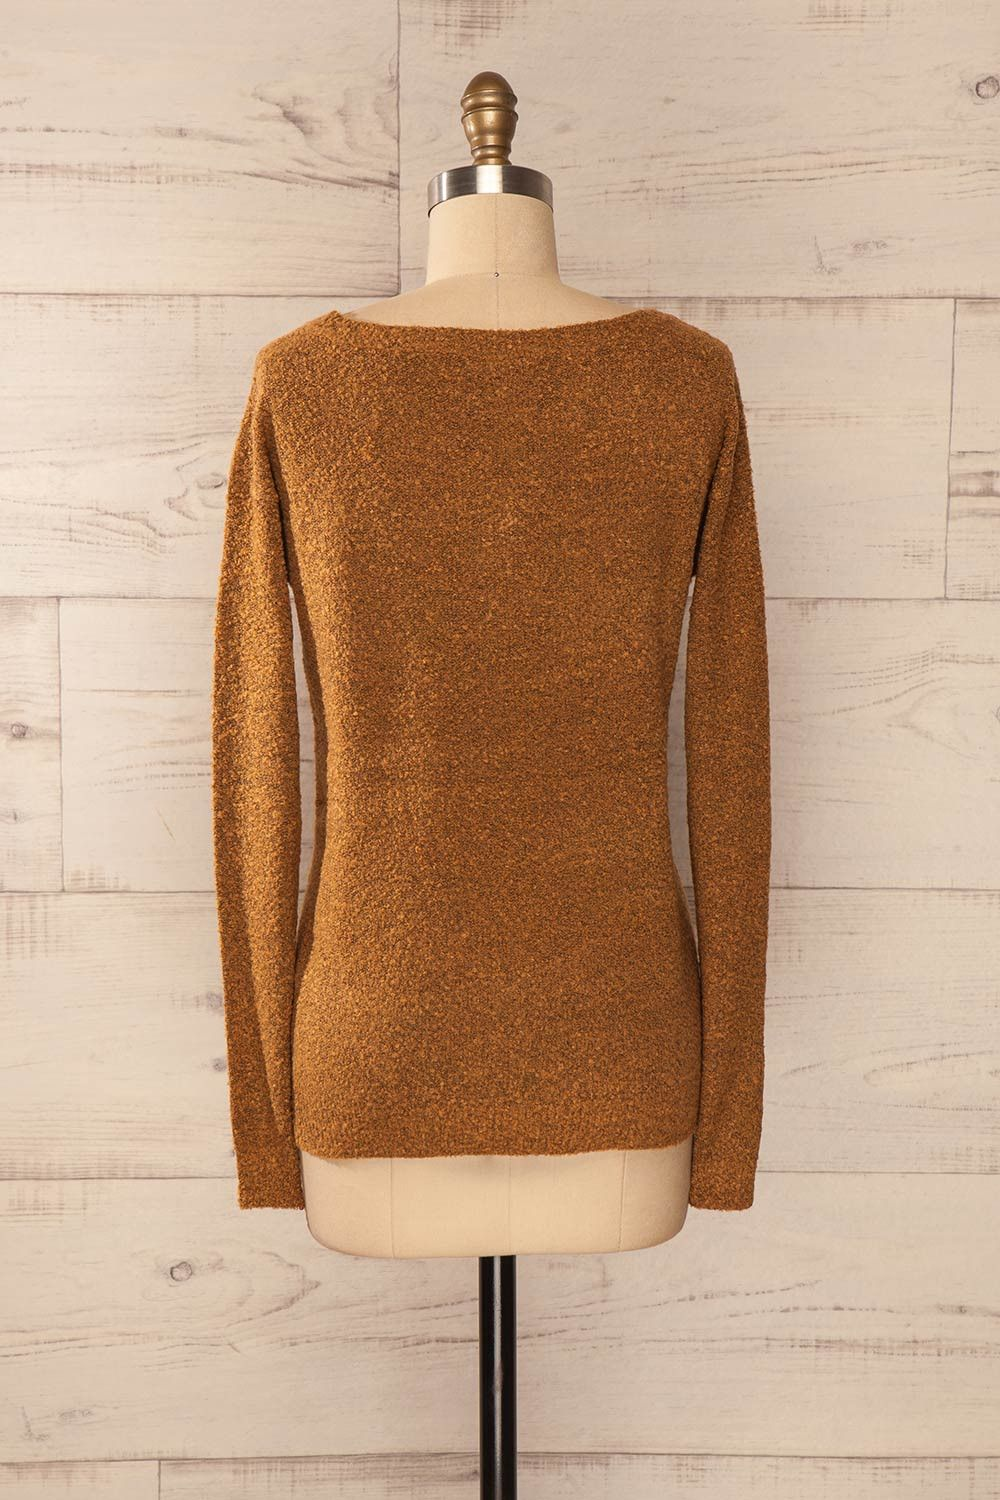 Brandebourg | Products, Brown and Knit sweaters